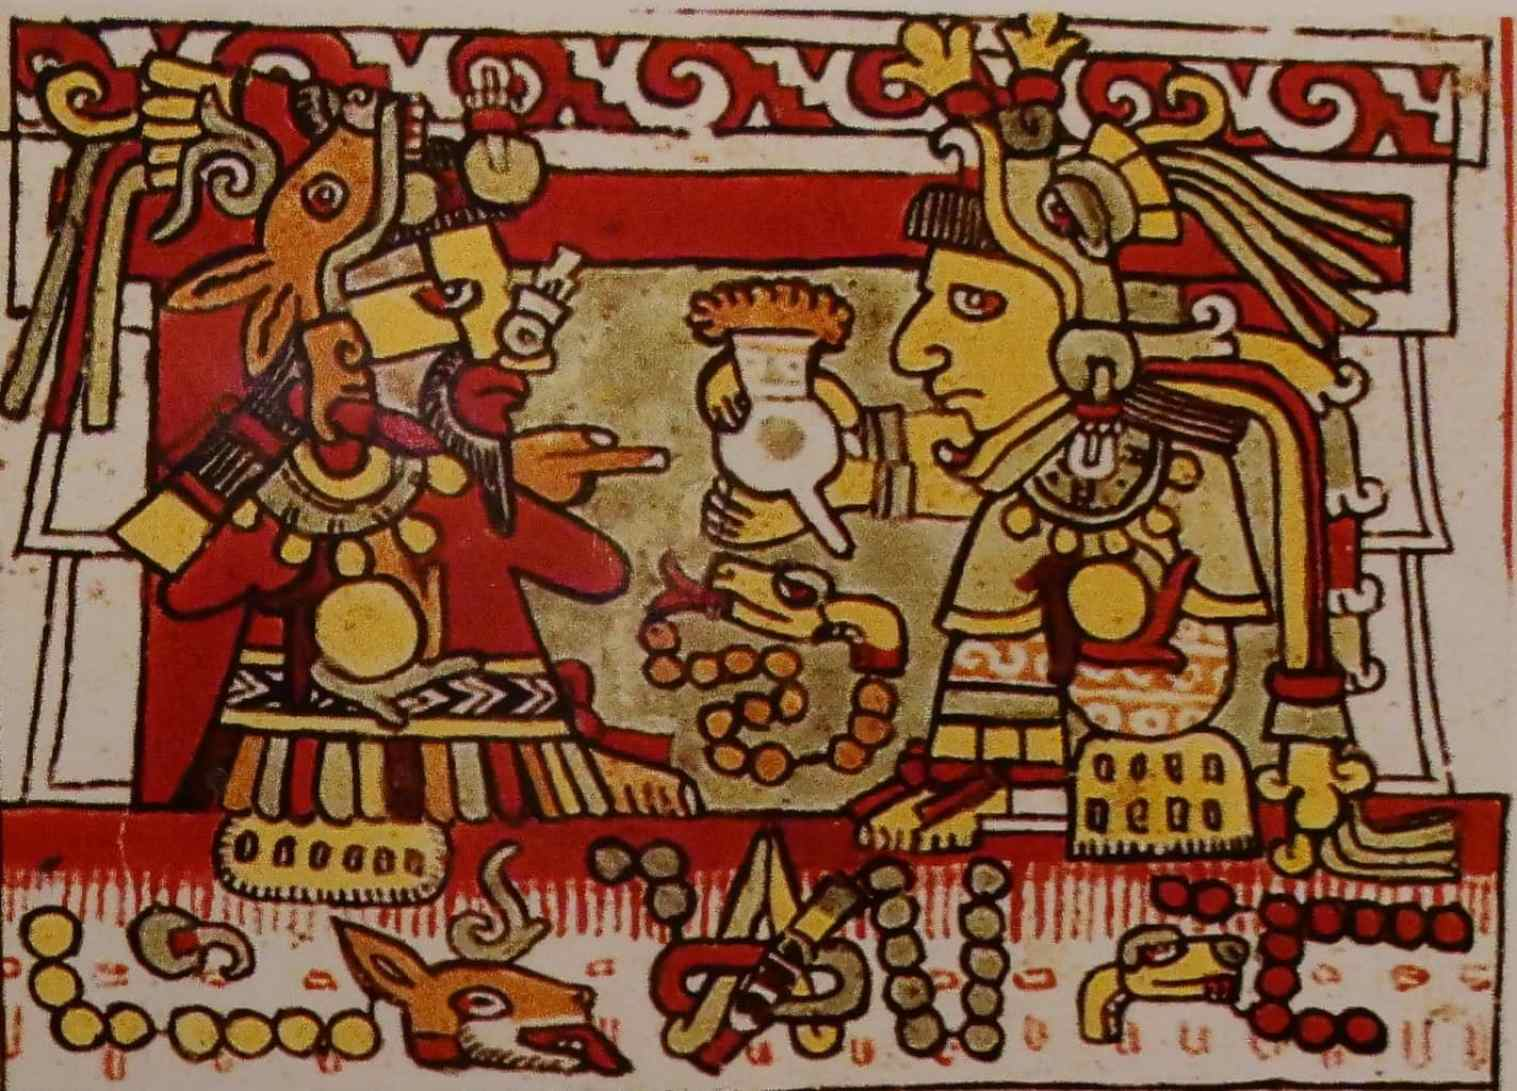 Cocoa in a Mayan painting